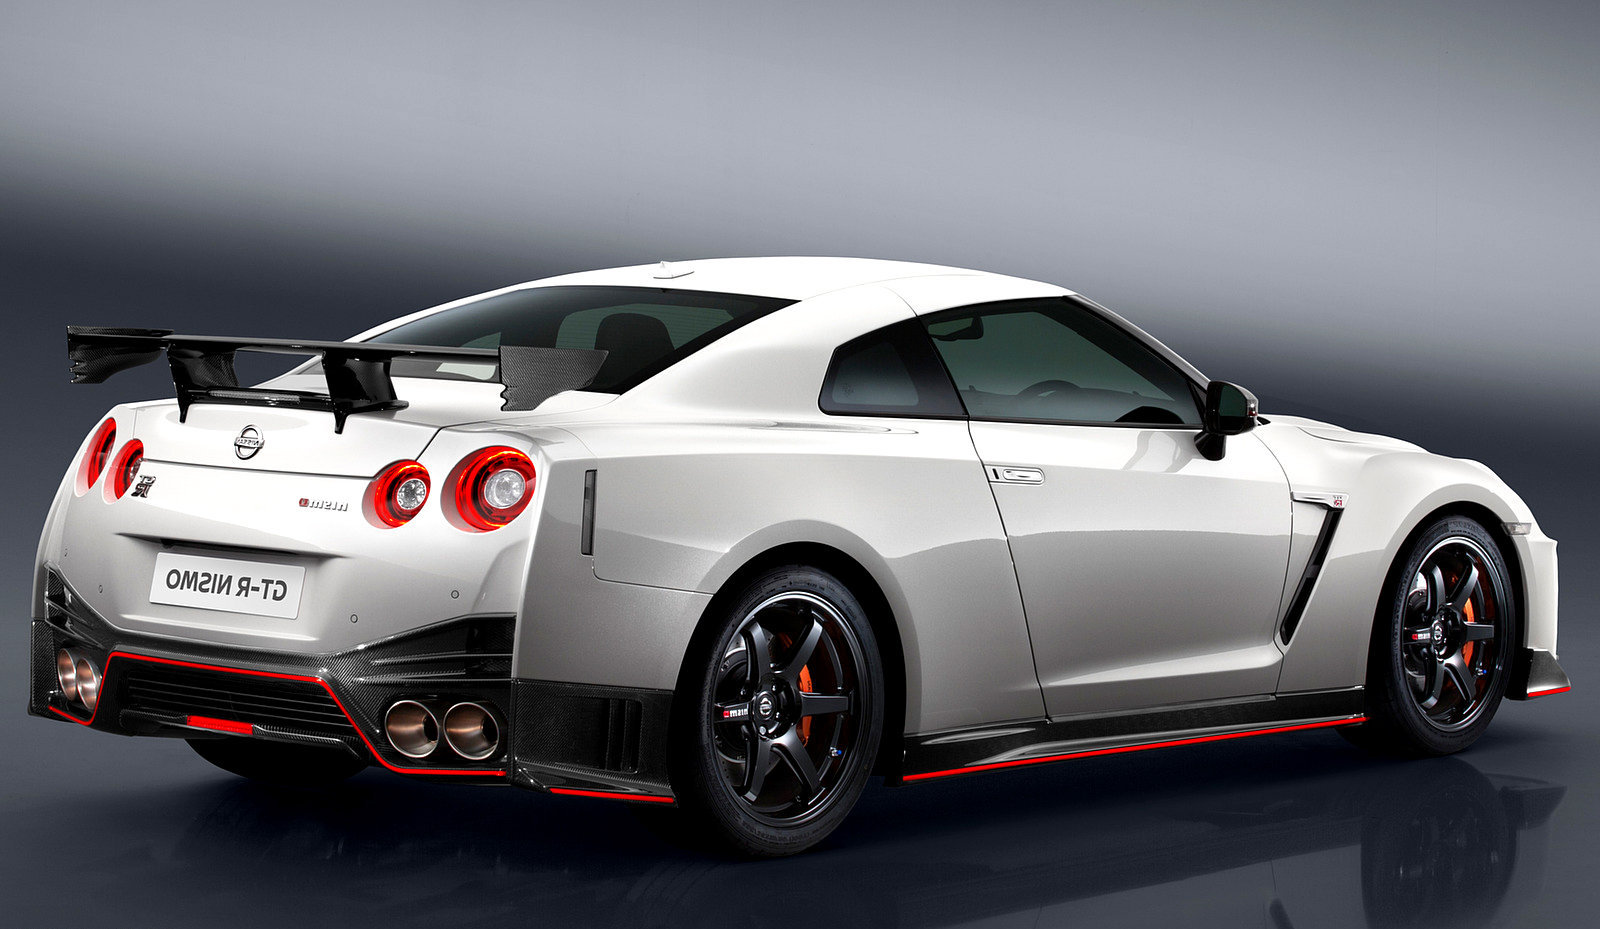 2017 Nissan Gt R Nismo White Rear Wallpaper